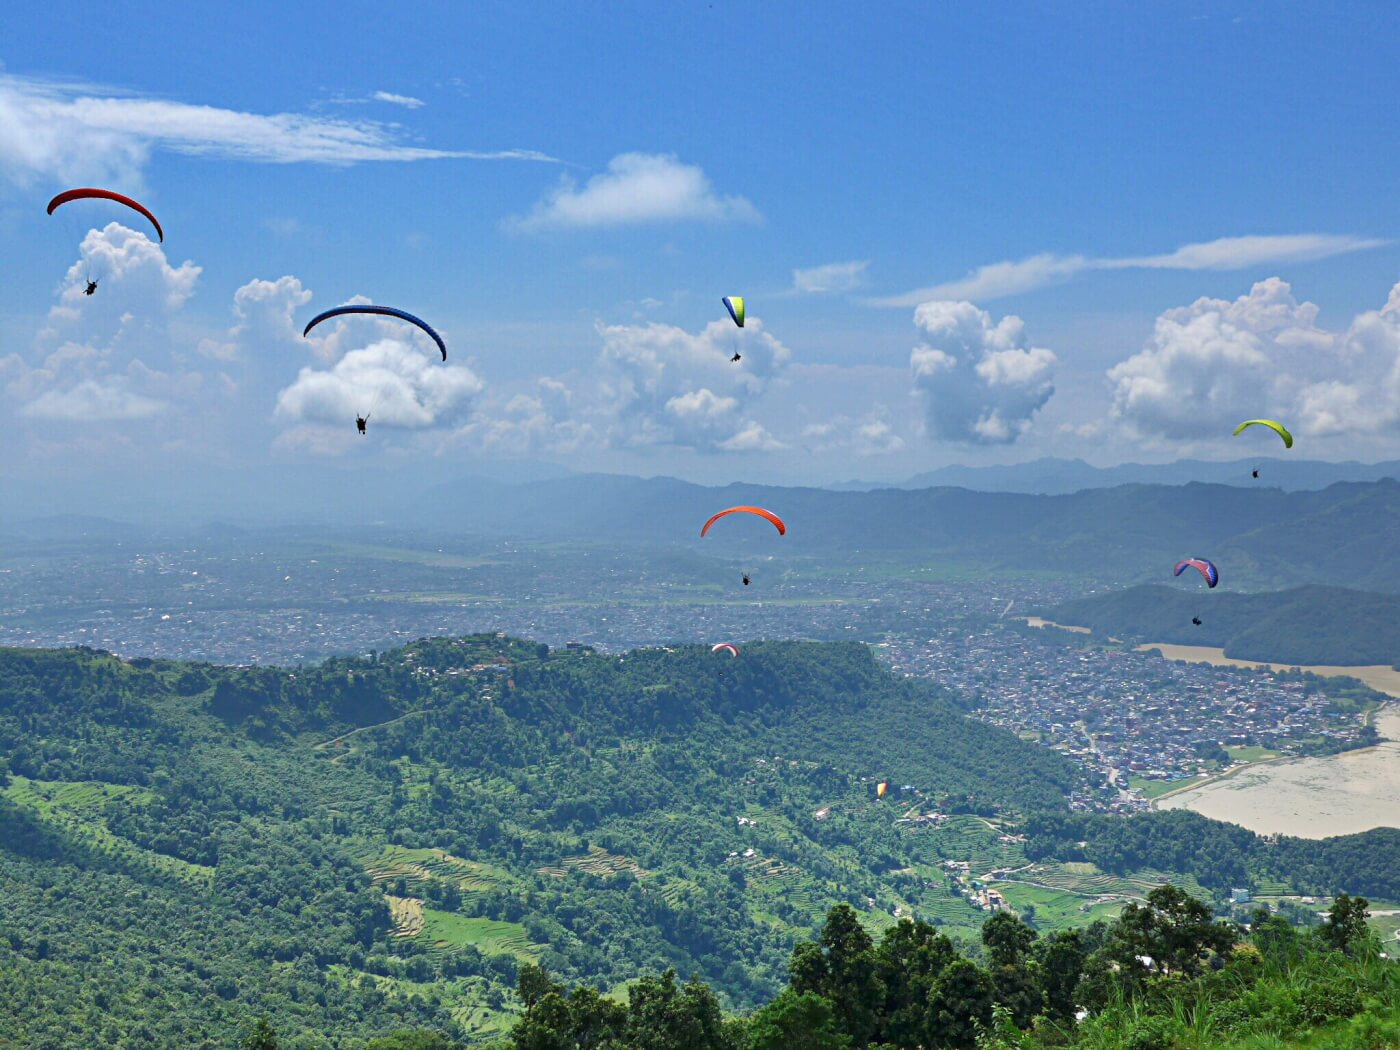 An action shot of my fellow adrenaline junkies paragliding over Pokhara